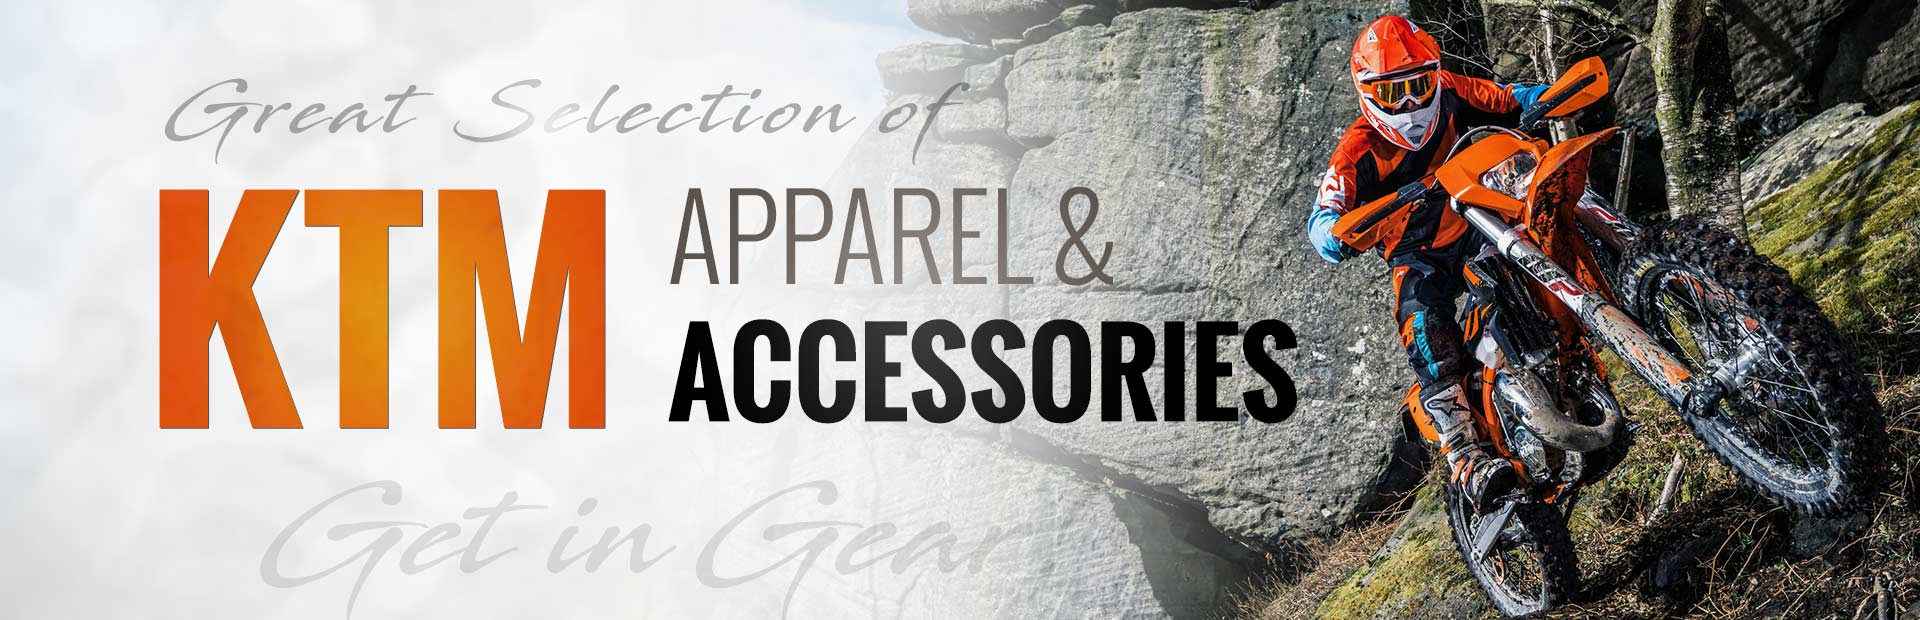 We have a great selection of KTM apparel and accessories!